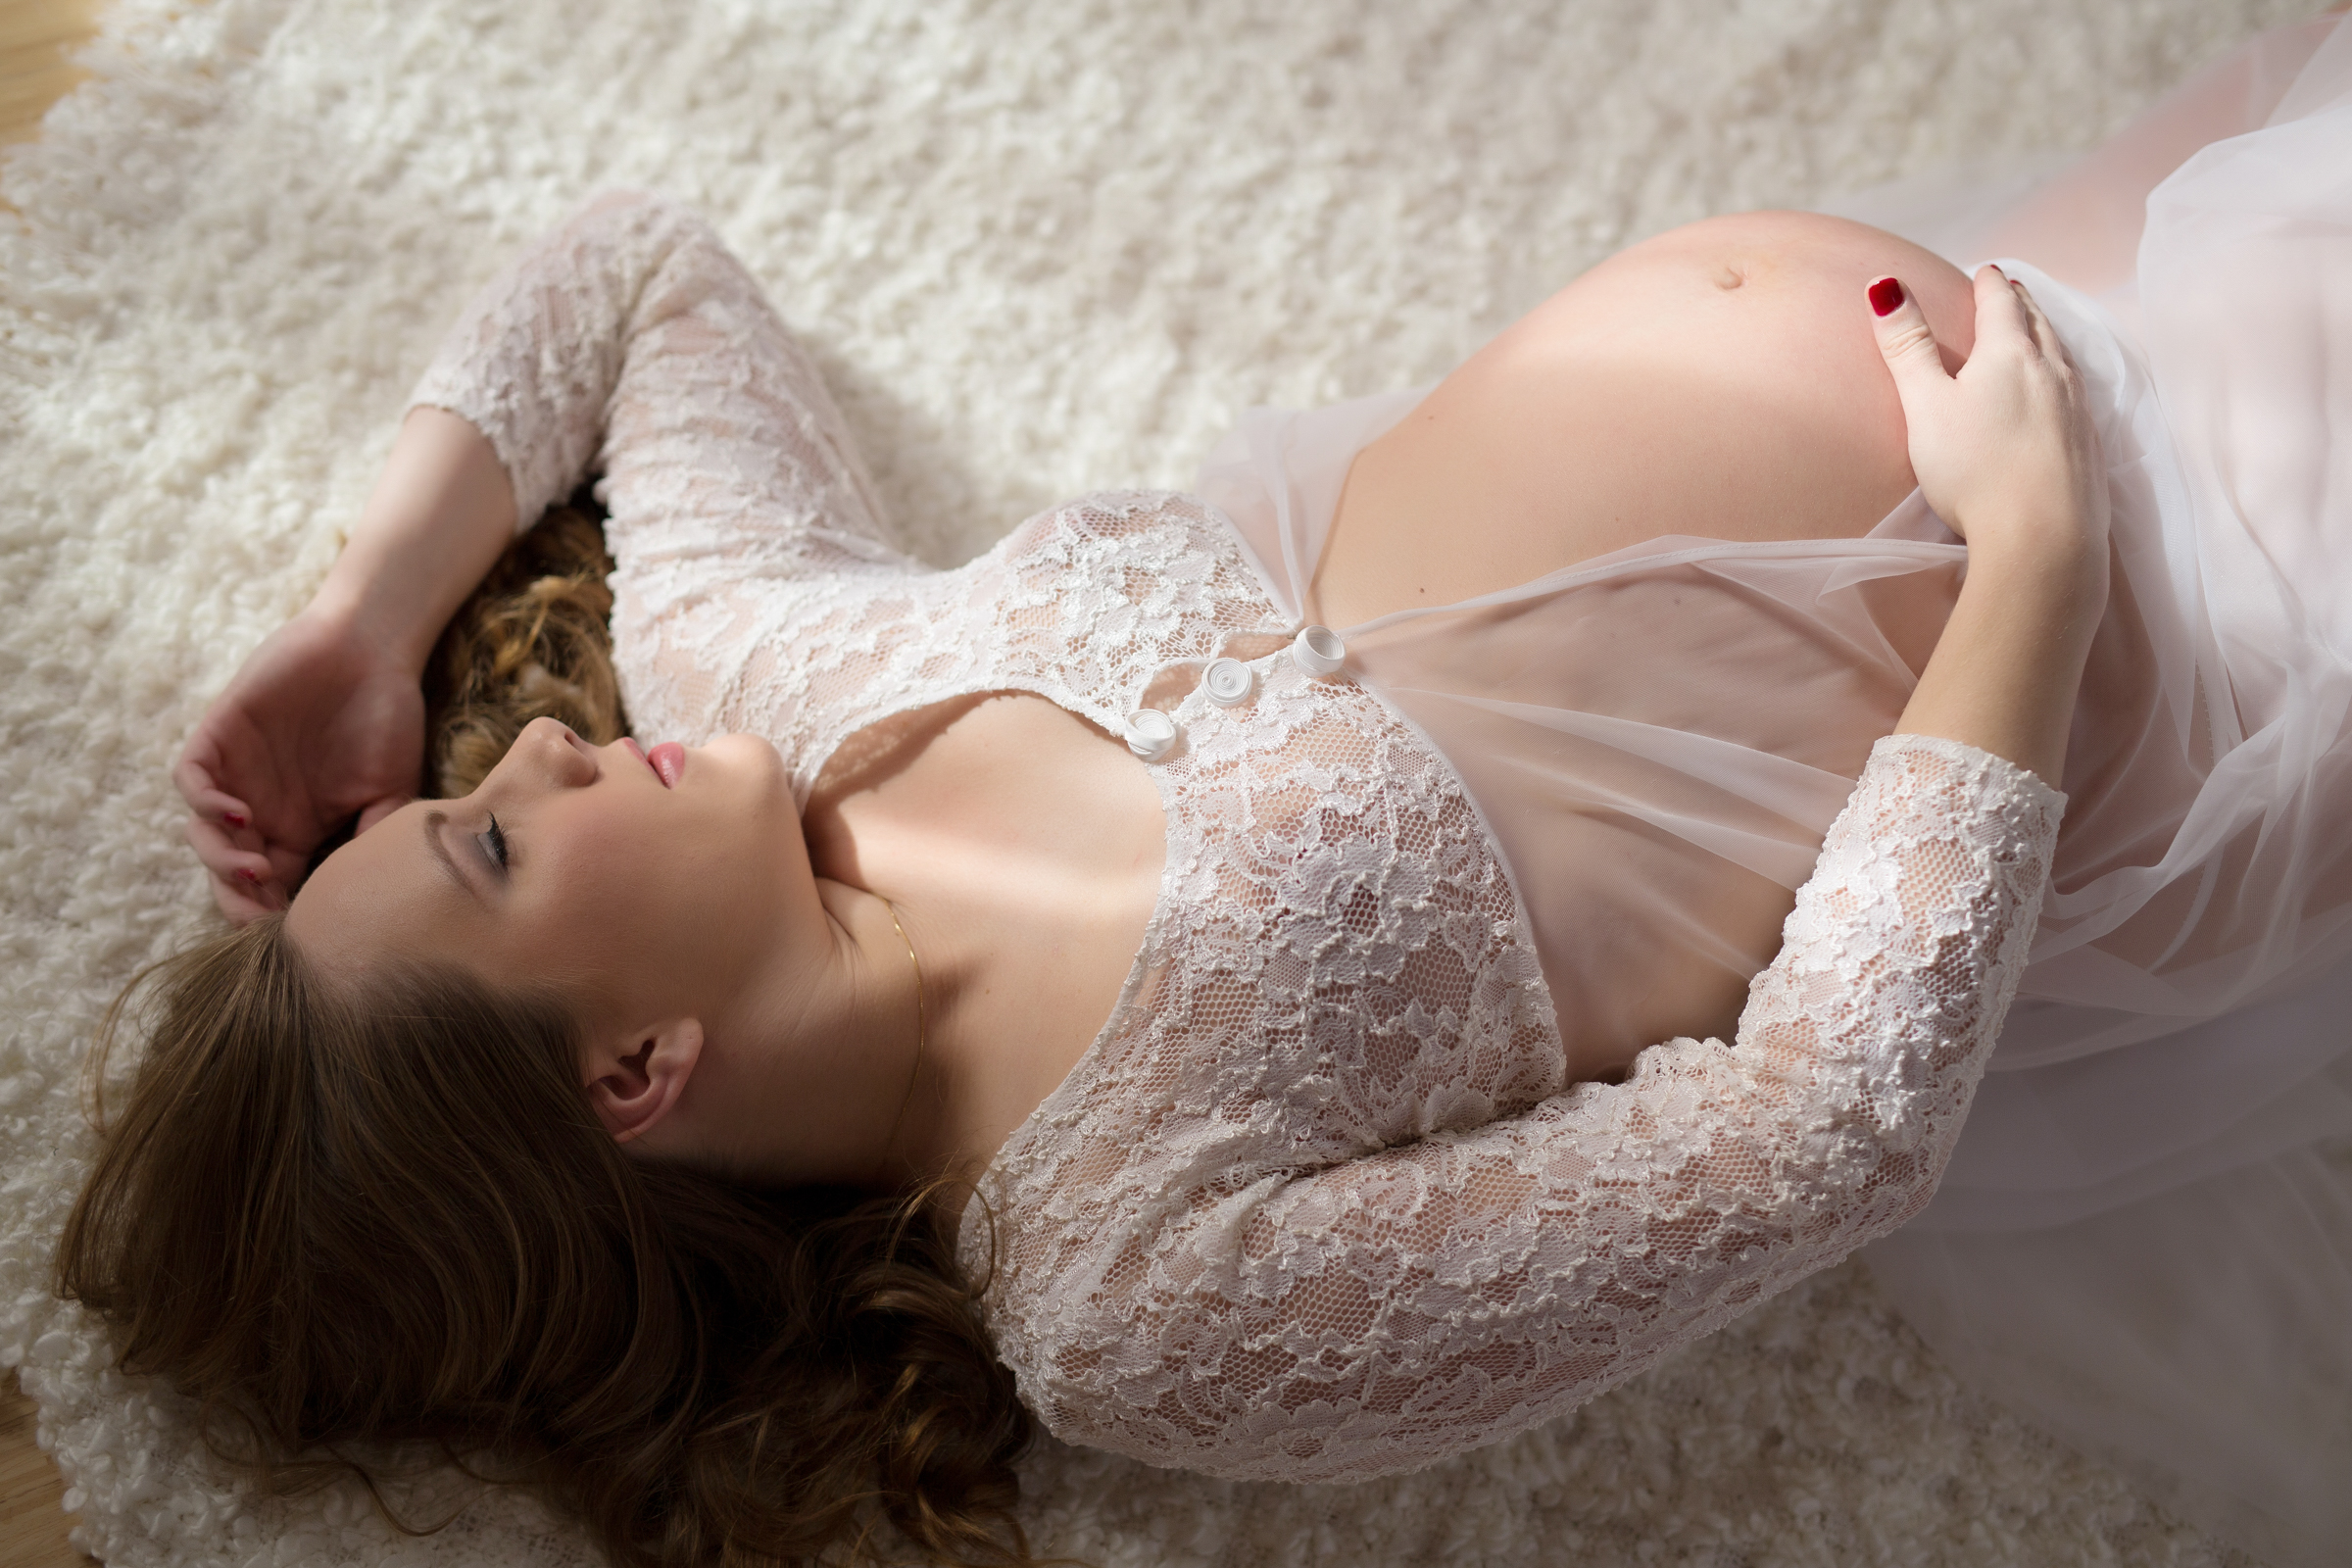 maternity-boudoir, boudoir-maternity, denver-maternity-photos, colorado-maternity-photography, denver-expecting-mothers, colorado-maternity-boudoir, denver-maternity-boudoir, colorado-expecting-mothers, pregnant-boudoir, boudoir-pregnant, denver-pregnancy-photos, colorado-pregnancy-photos